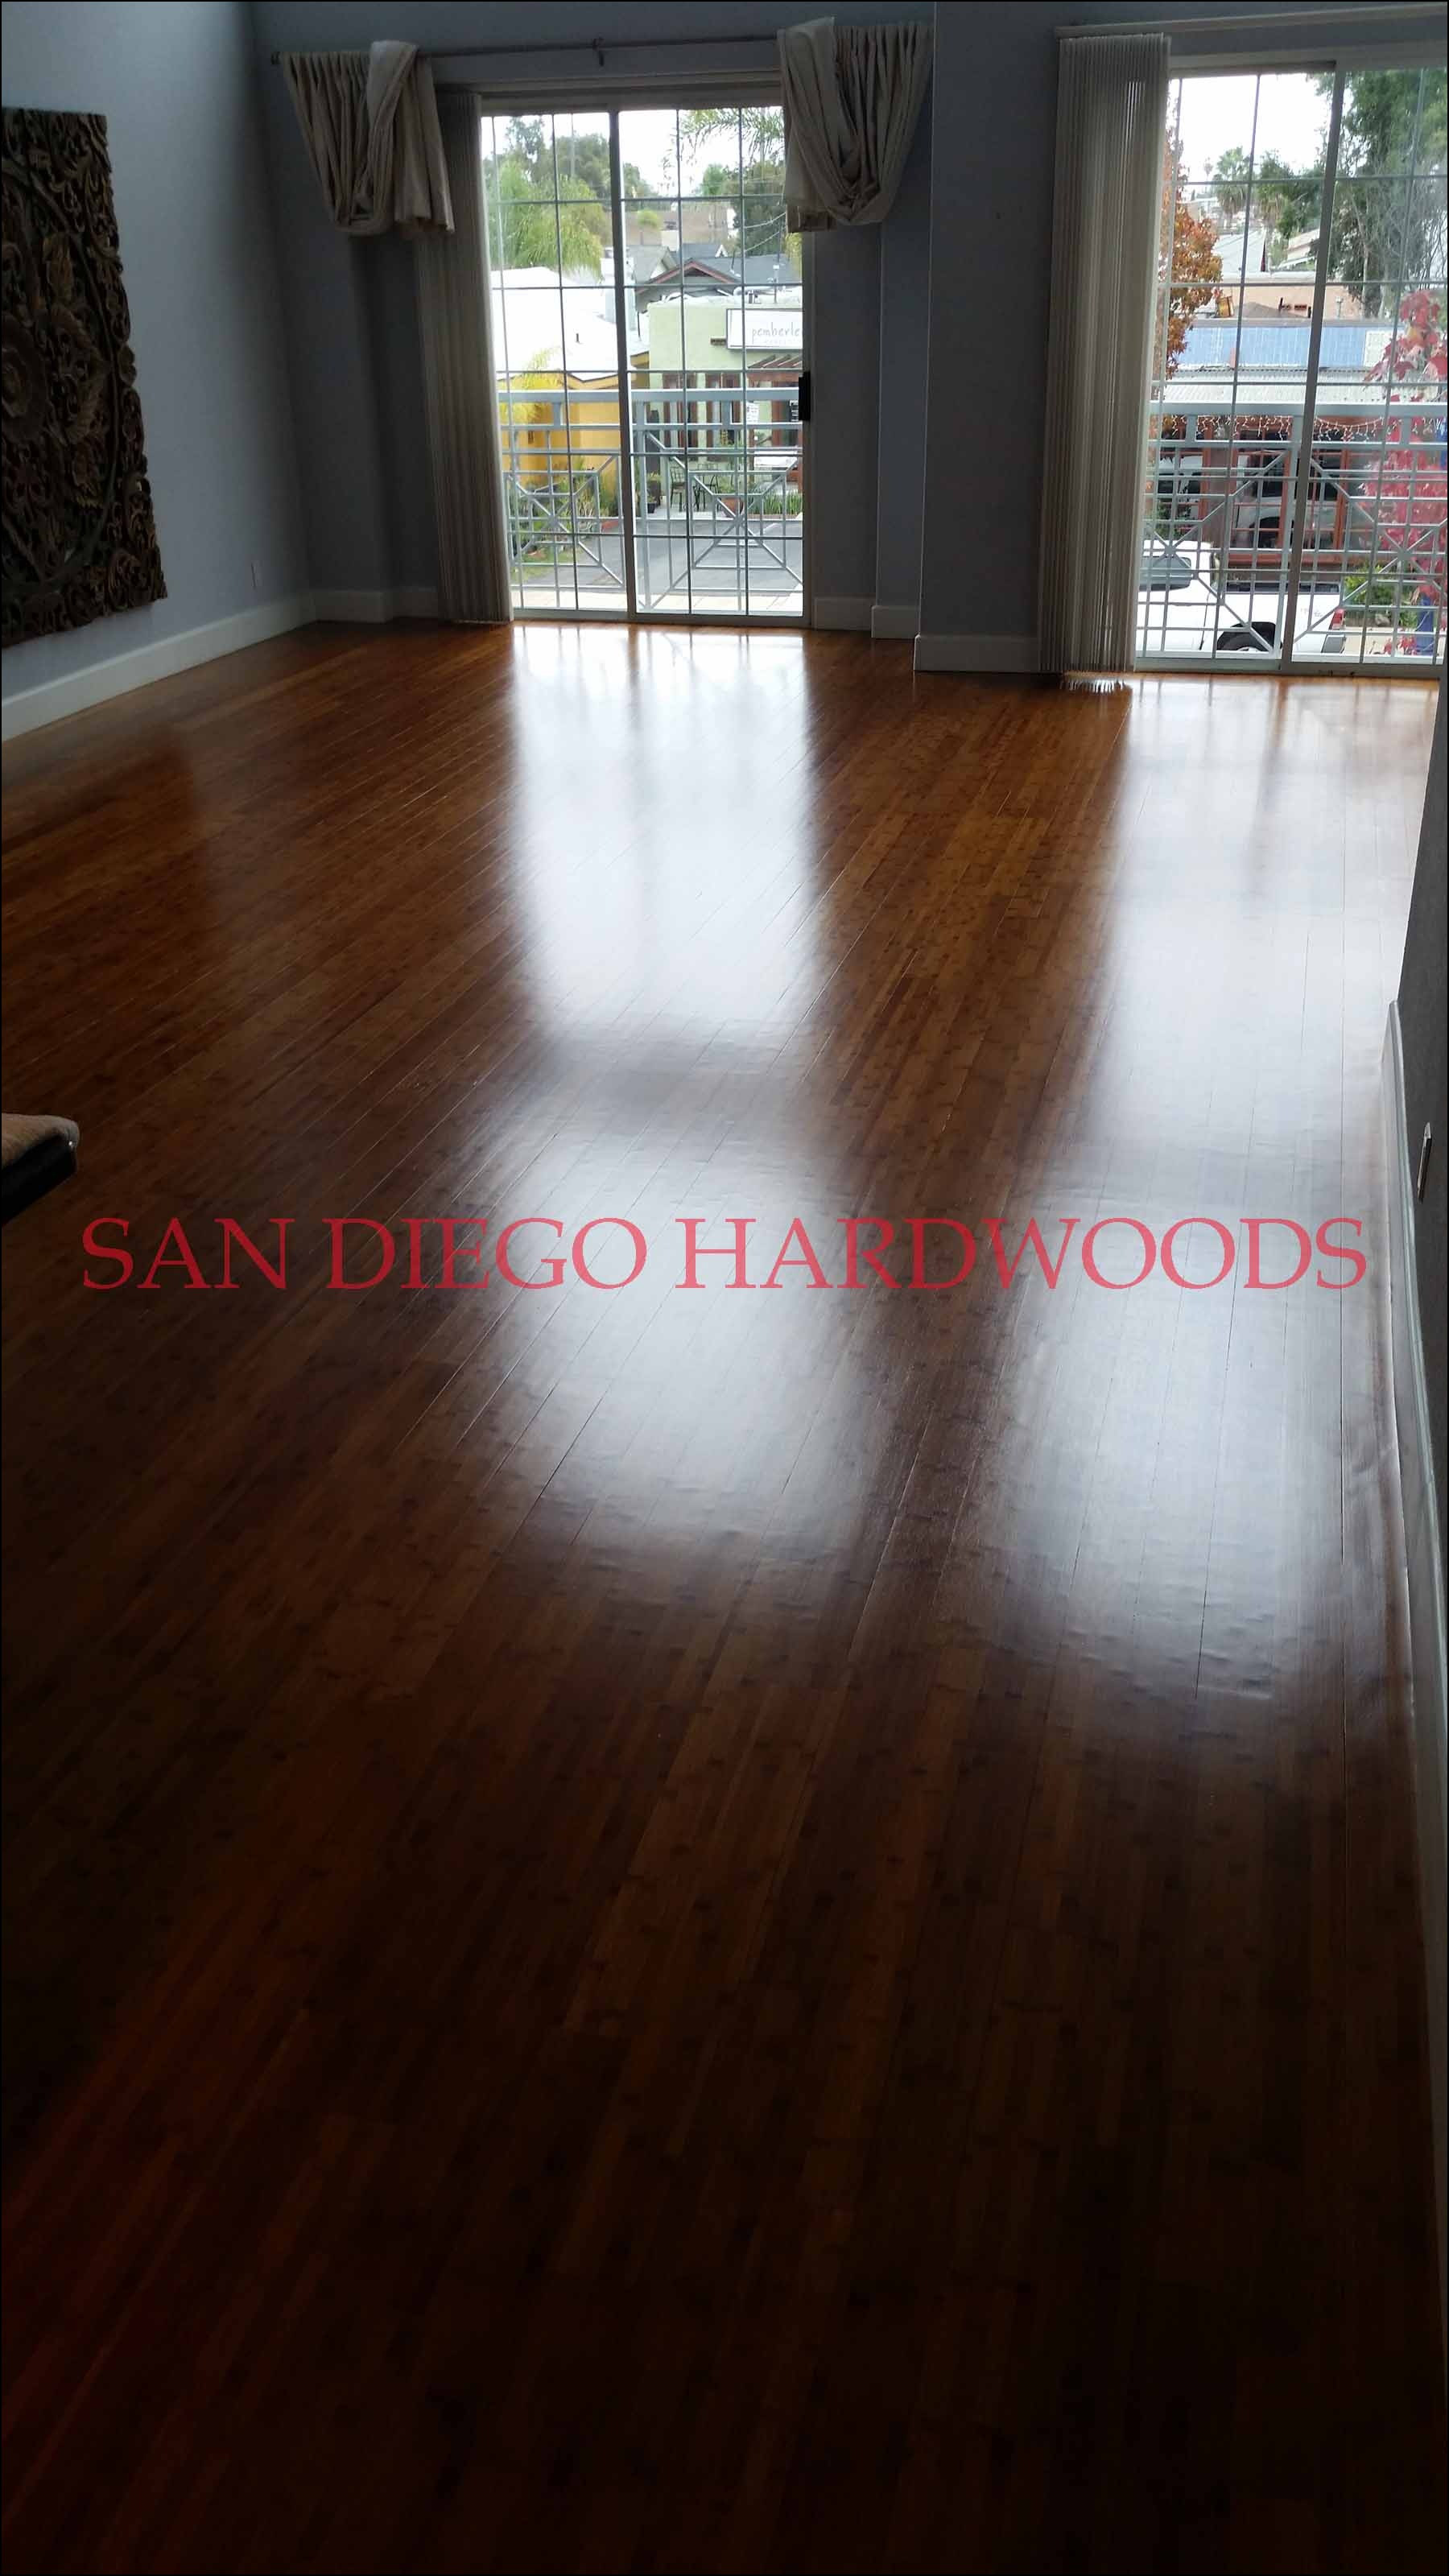 hardwood flooring perth of what is flooring ideas in what is the highest quality laminate flooring images san diego hardwood floor restoration 858 699 0072